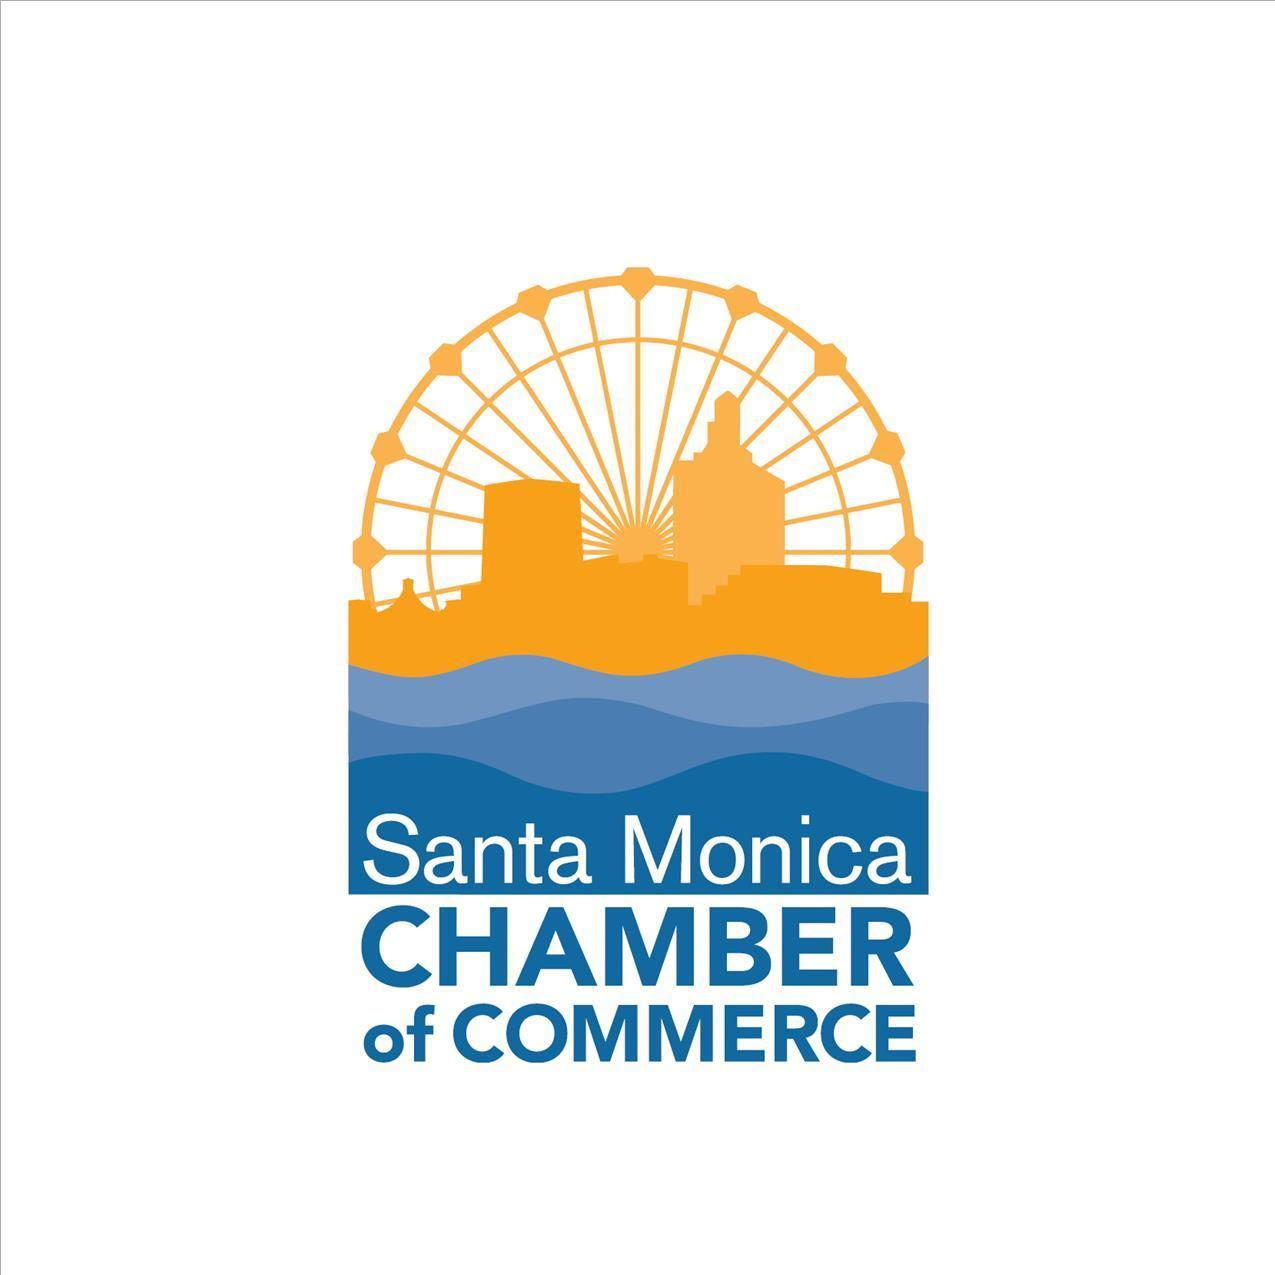 Essential business resources and updates from the Santa Monica business community